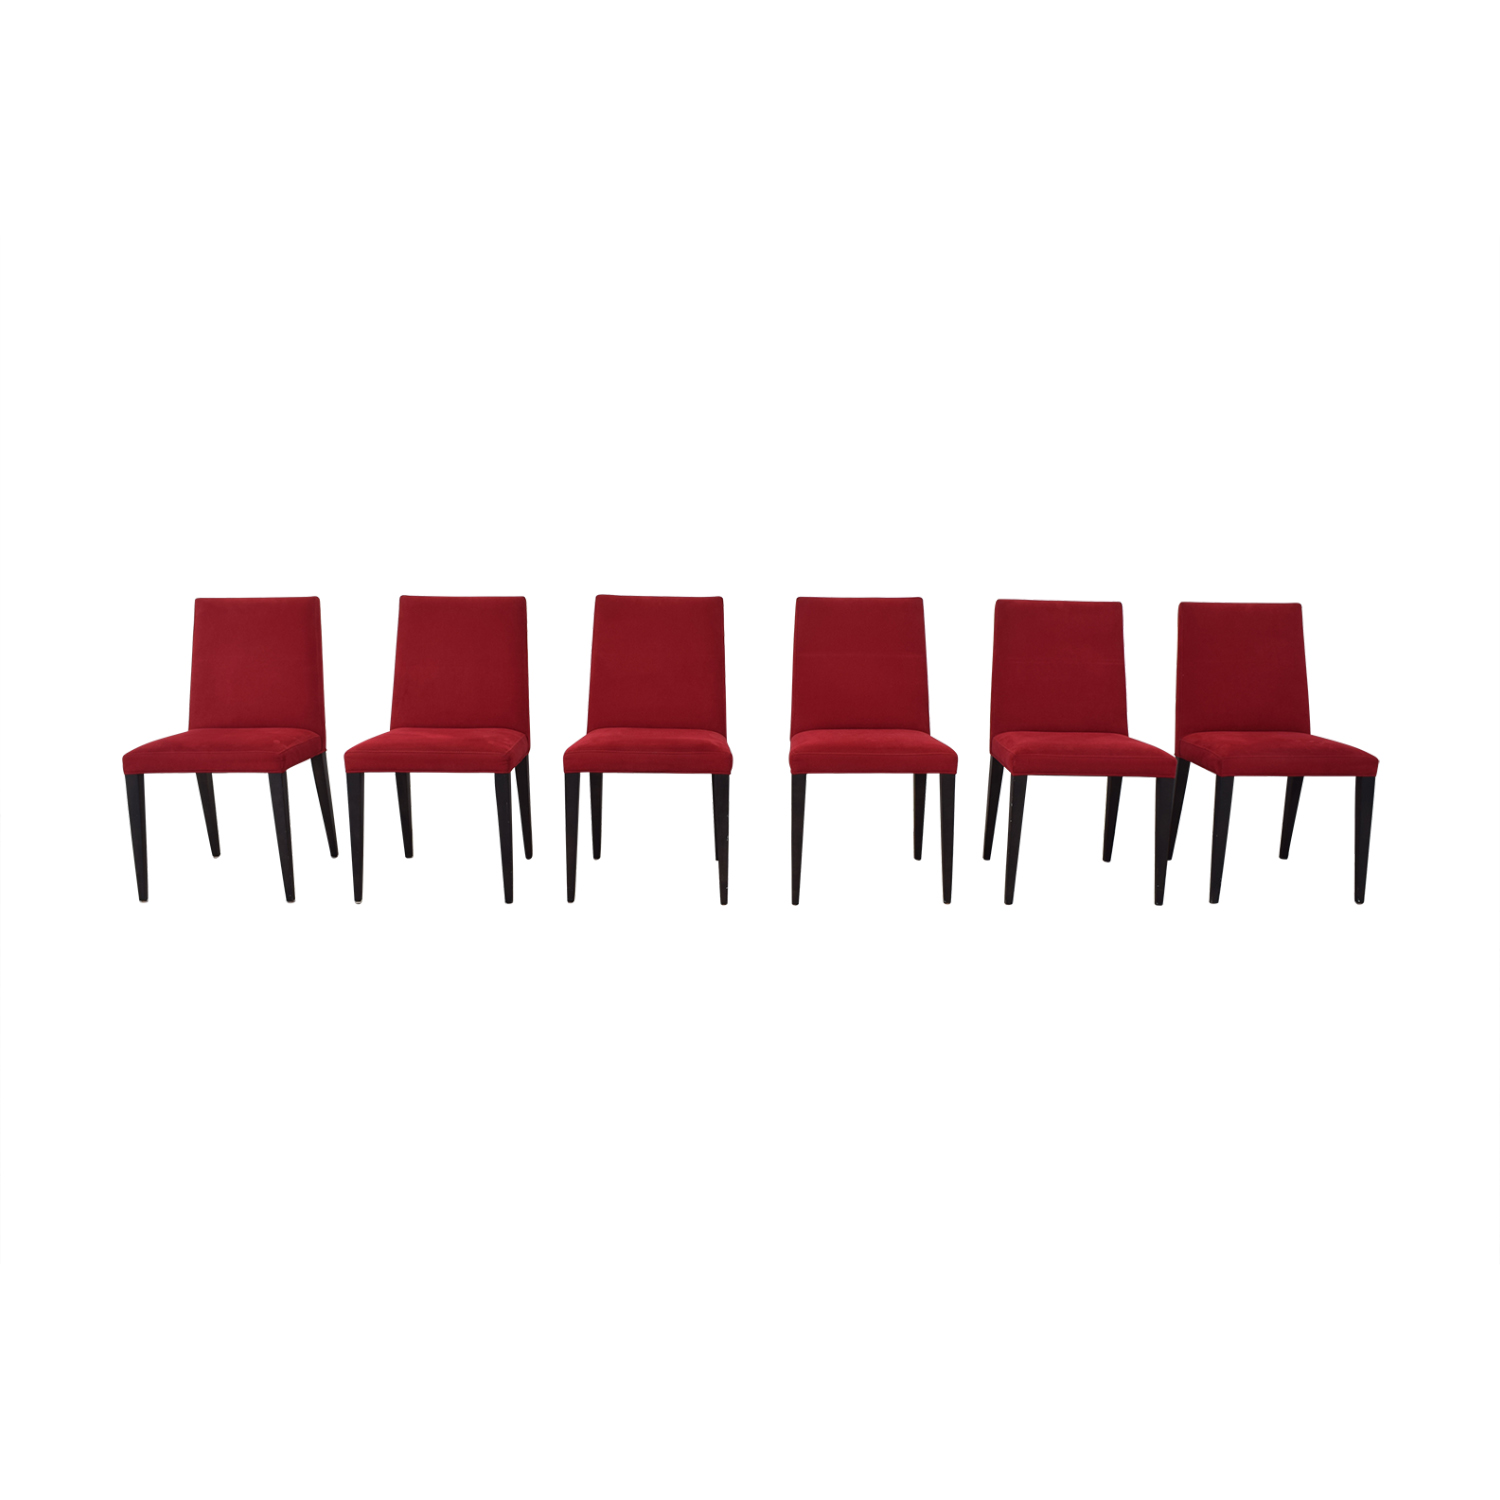 shop Room & Board Room & Board Ava Upholstered Dining Chairs online